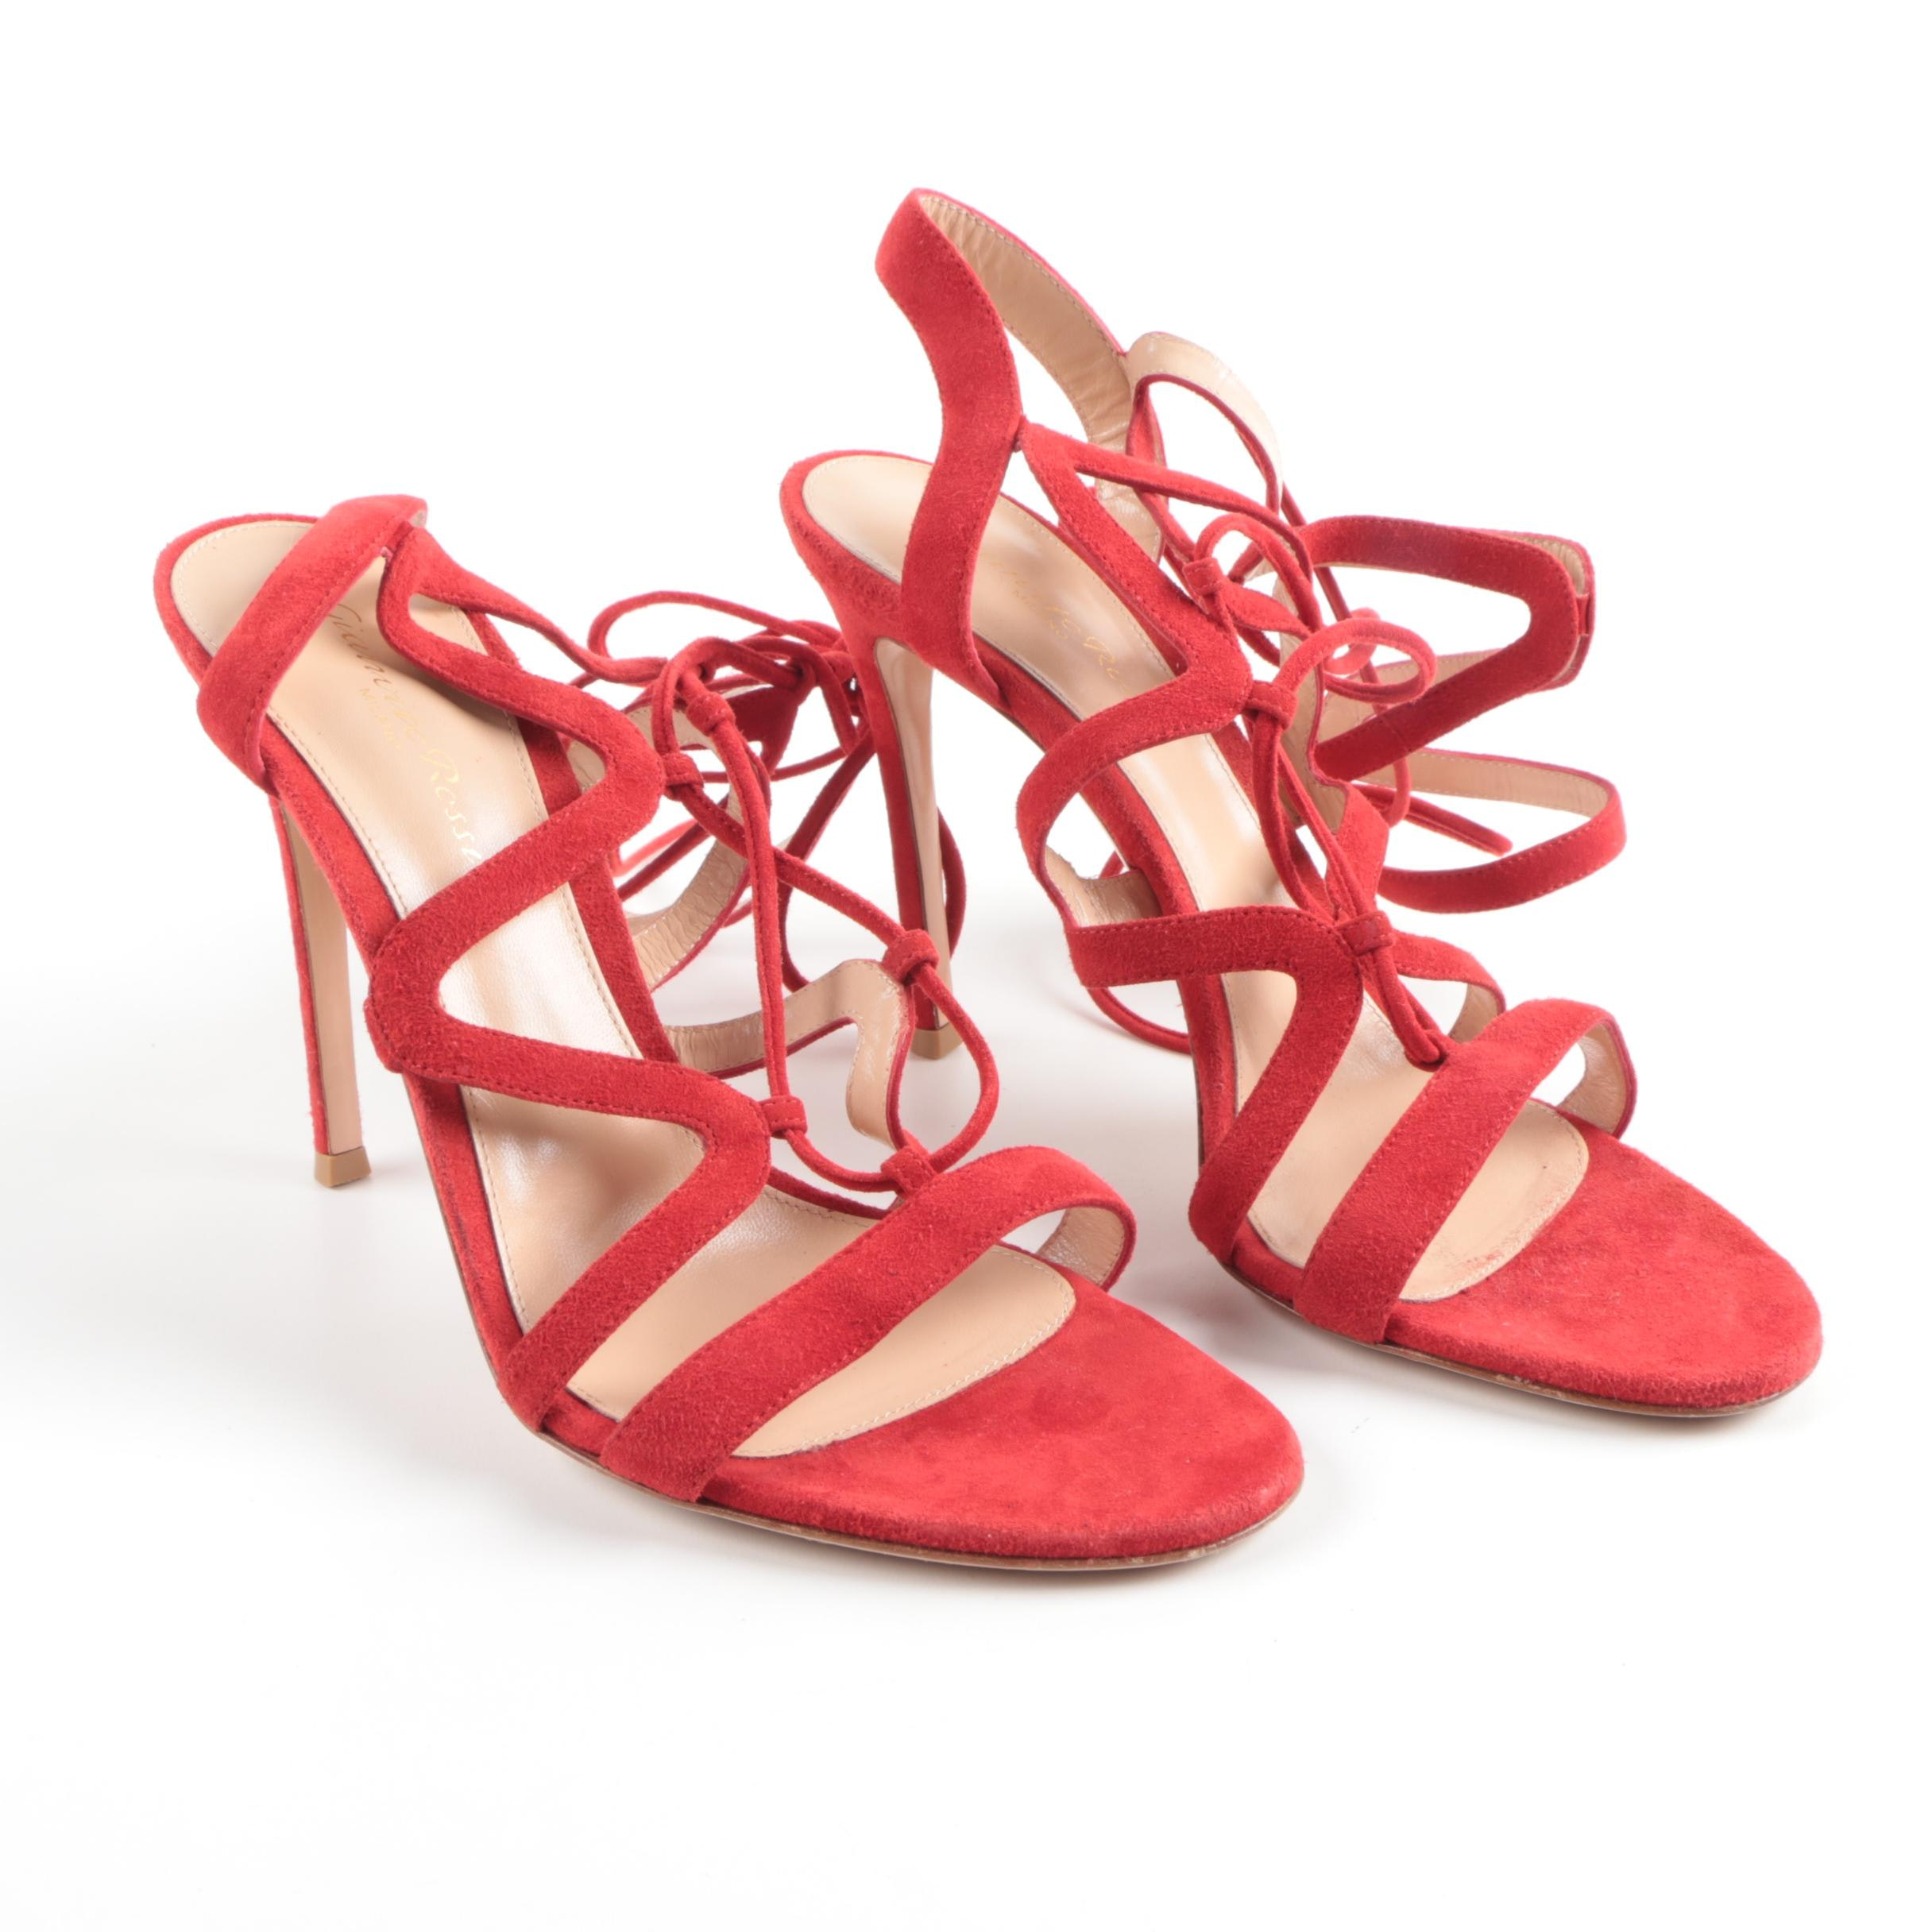 Gianvito Rossi Red Suede Lace-Up Ankle Heels